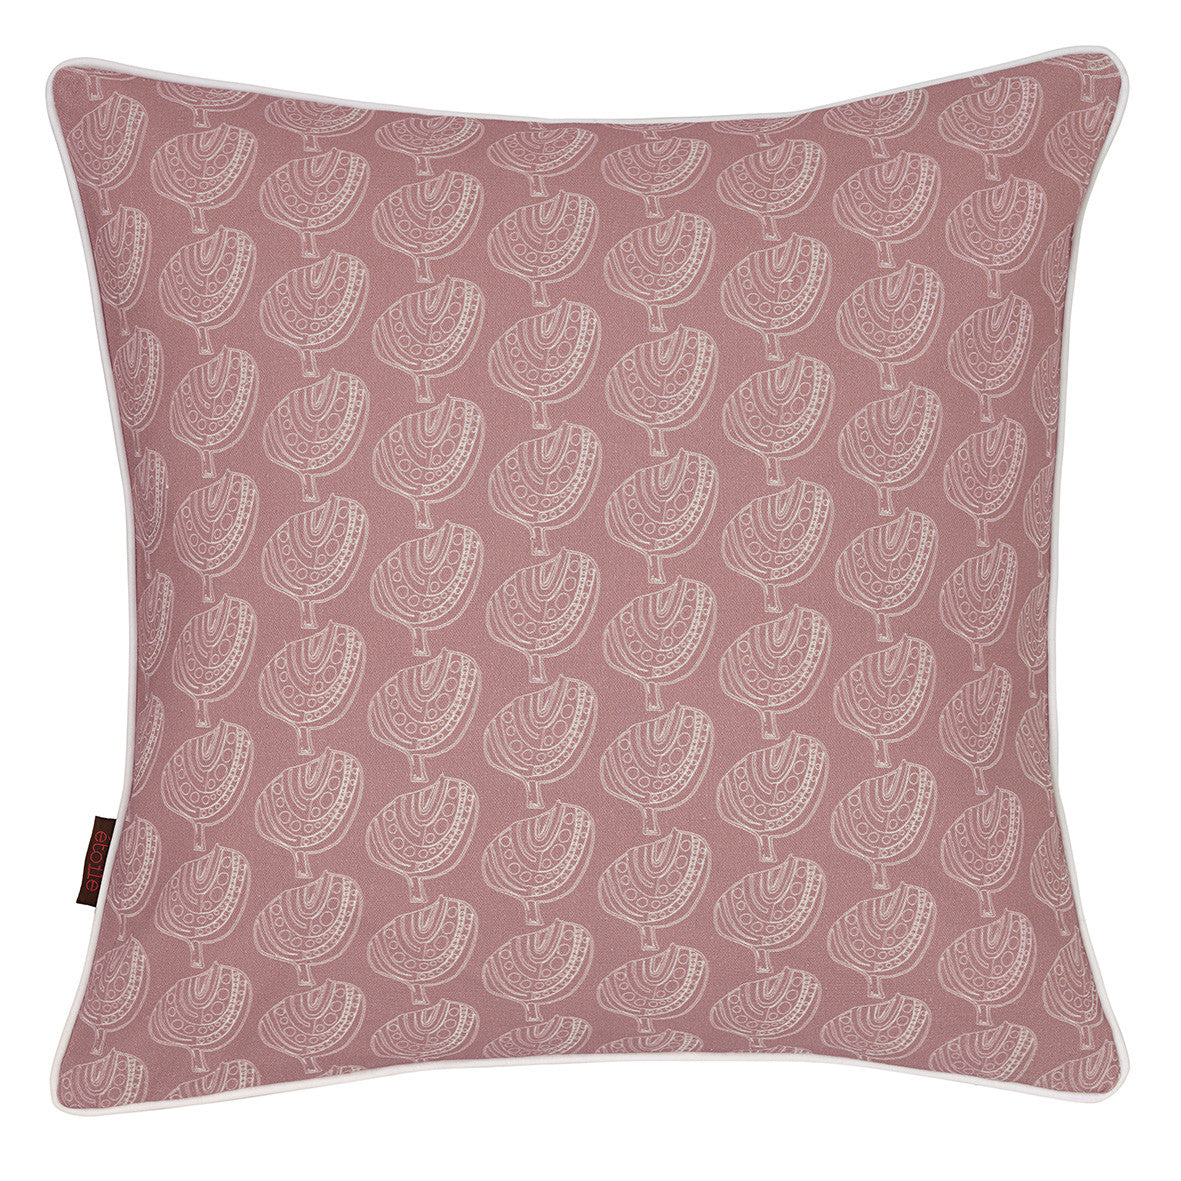 Graphic Apple Tree Pattern Printed Linen Union Cushion in Light Heather Pink